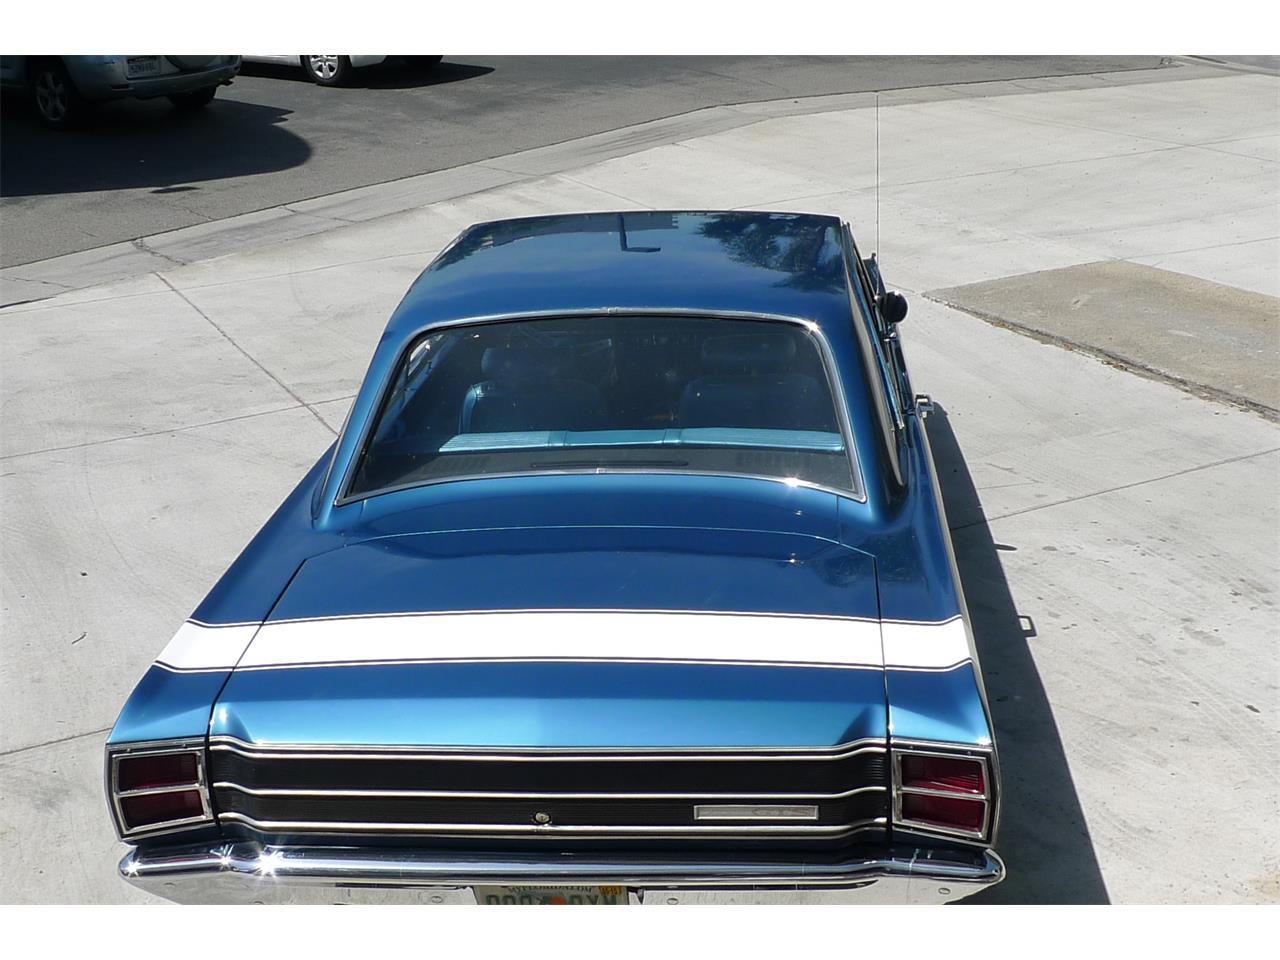 Large Picture of Classic '69 Dodge Dart GTS located in Anaheim California - $35,975.00 - PW66